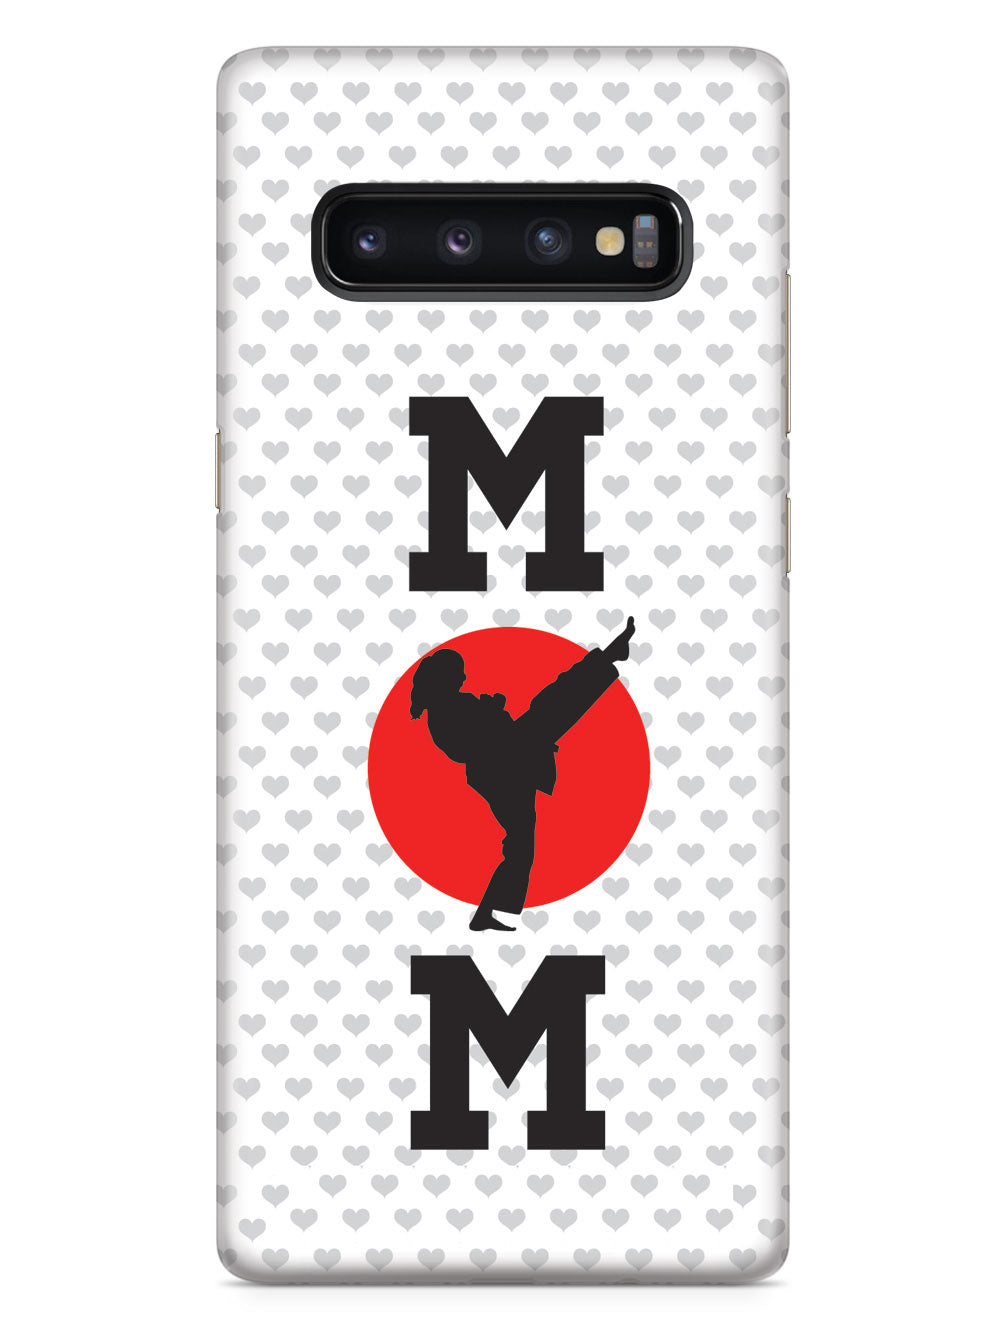 Karate Mom Case